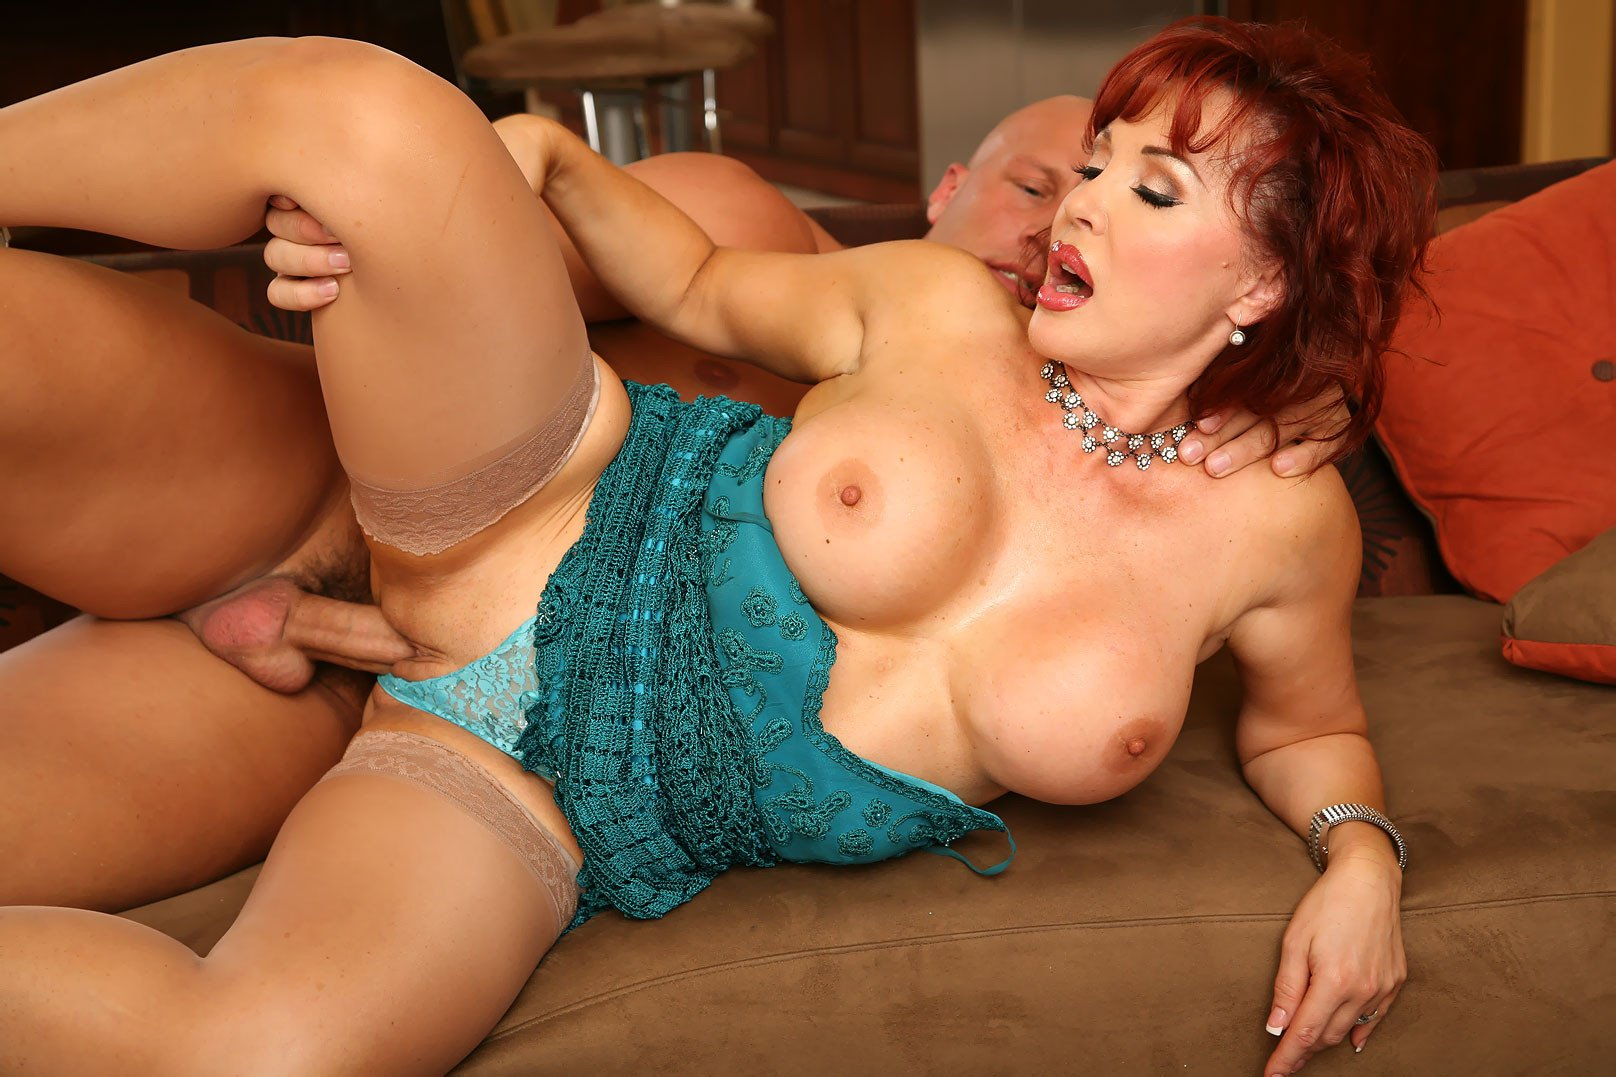 Mature pornstar and milf porn pictures